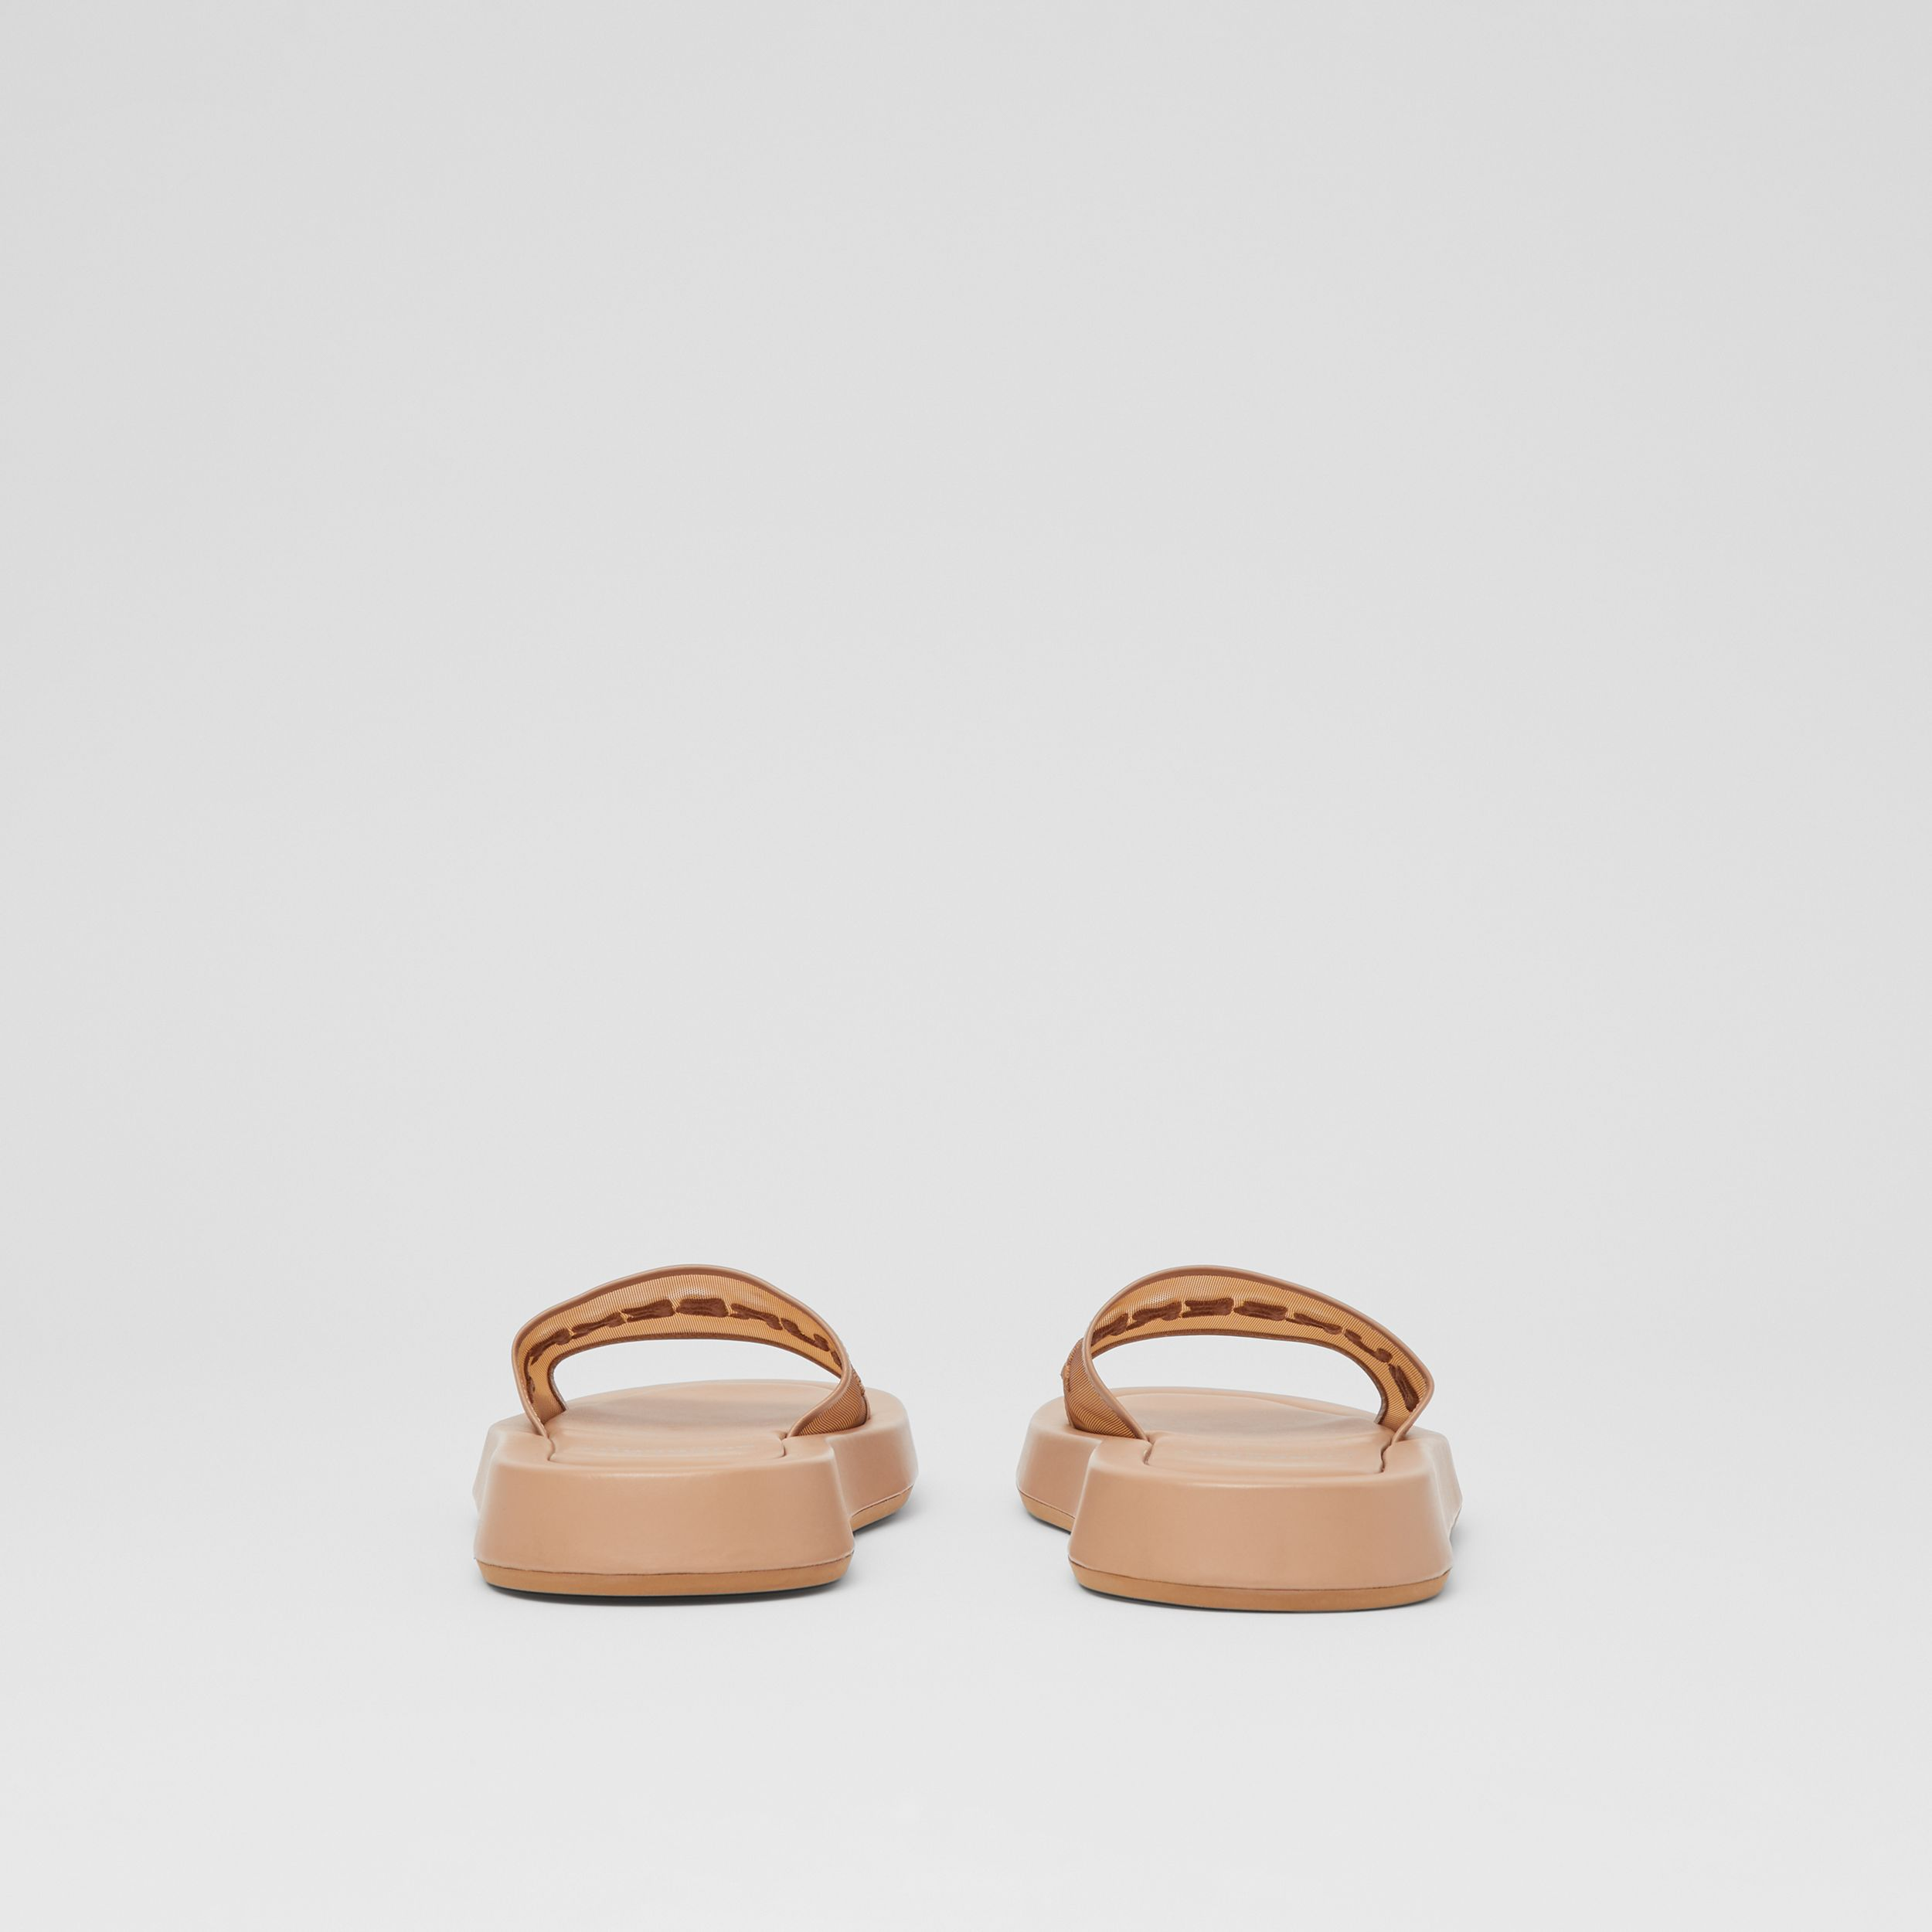 Embroidered Logo Mesh and Leather Slides in Camel - Women | Burberry - 4